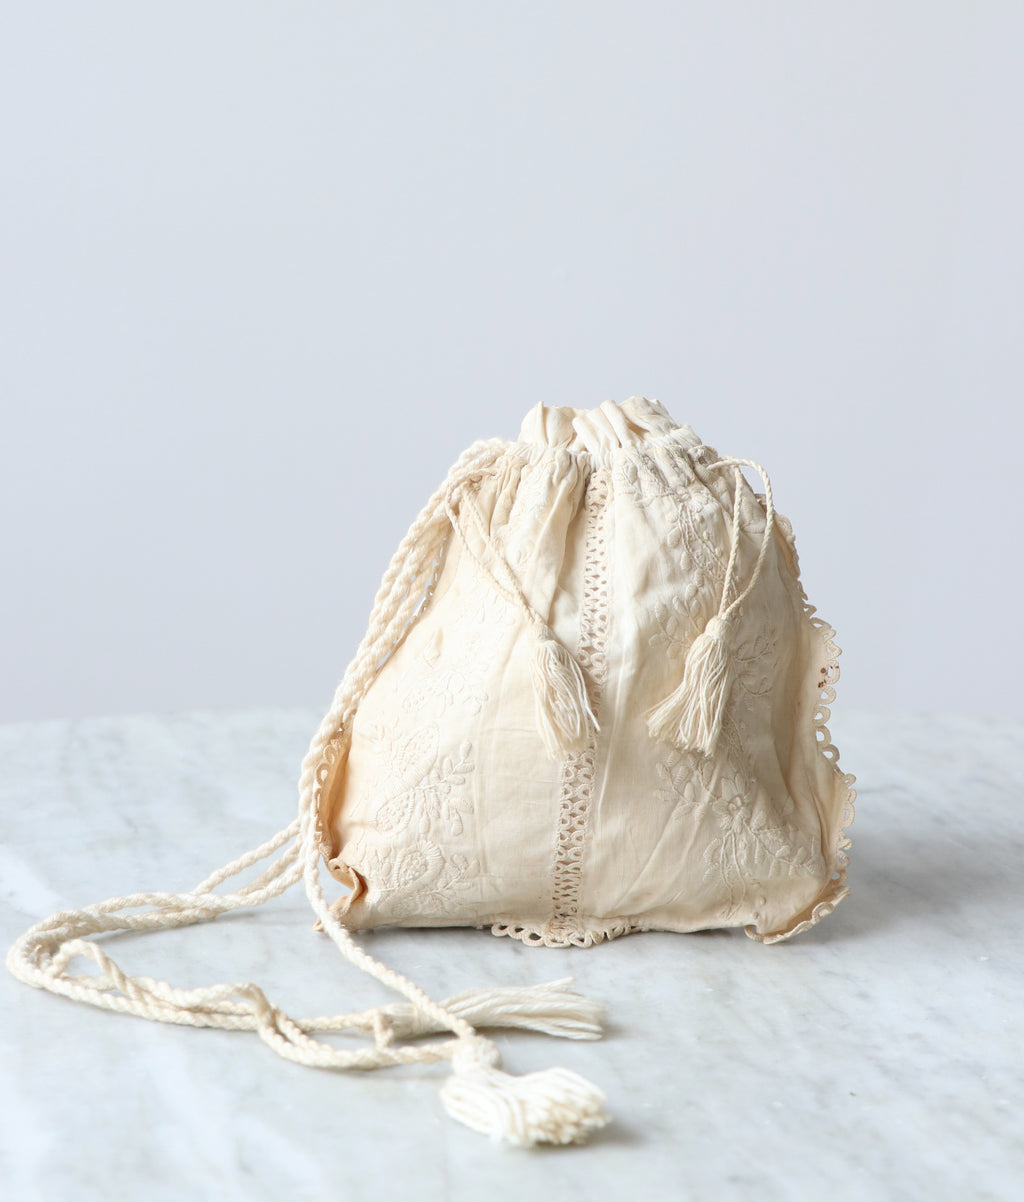 Antique Embroidered Drawstring Bag